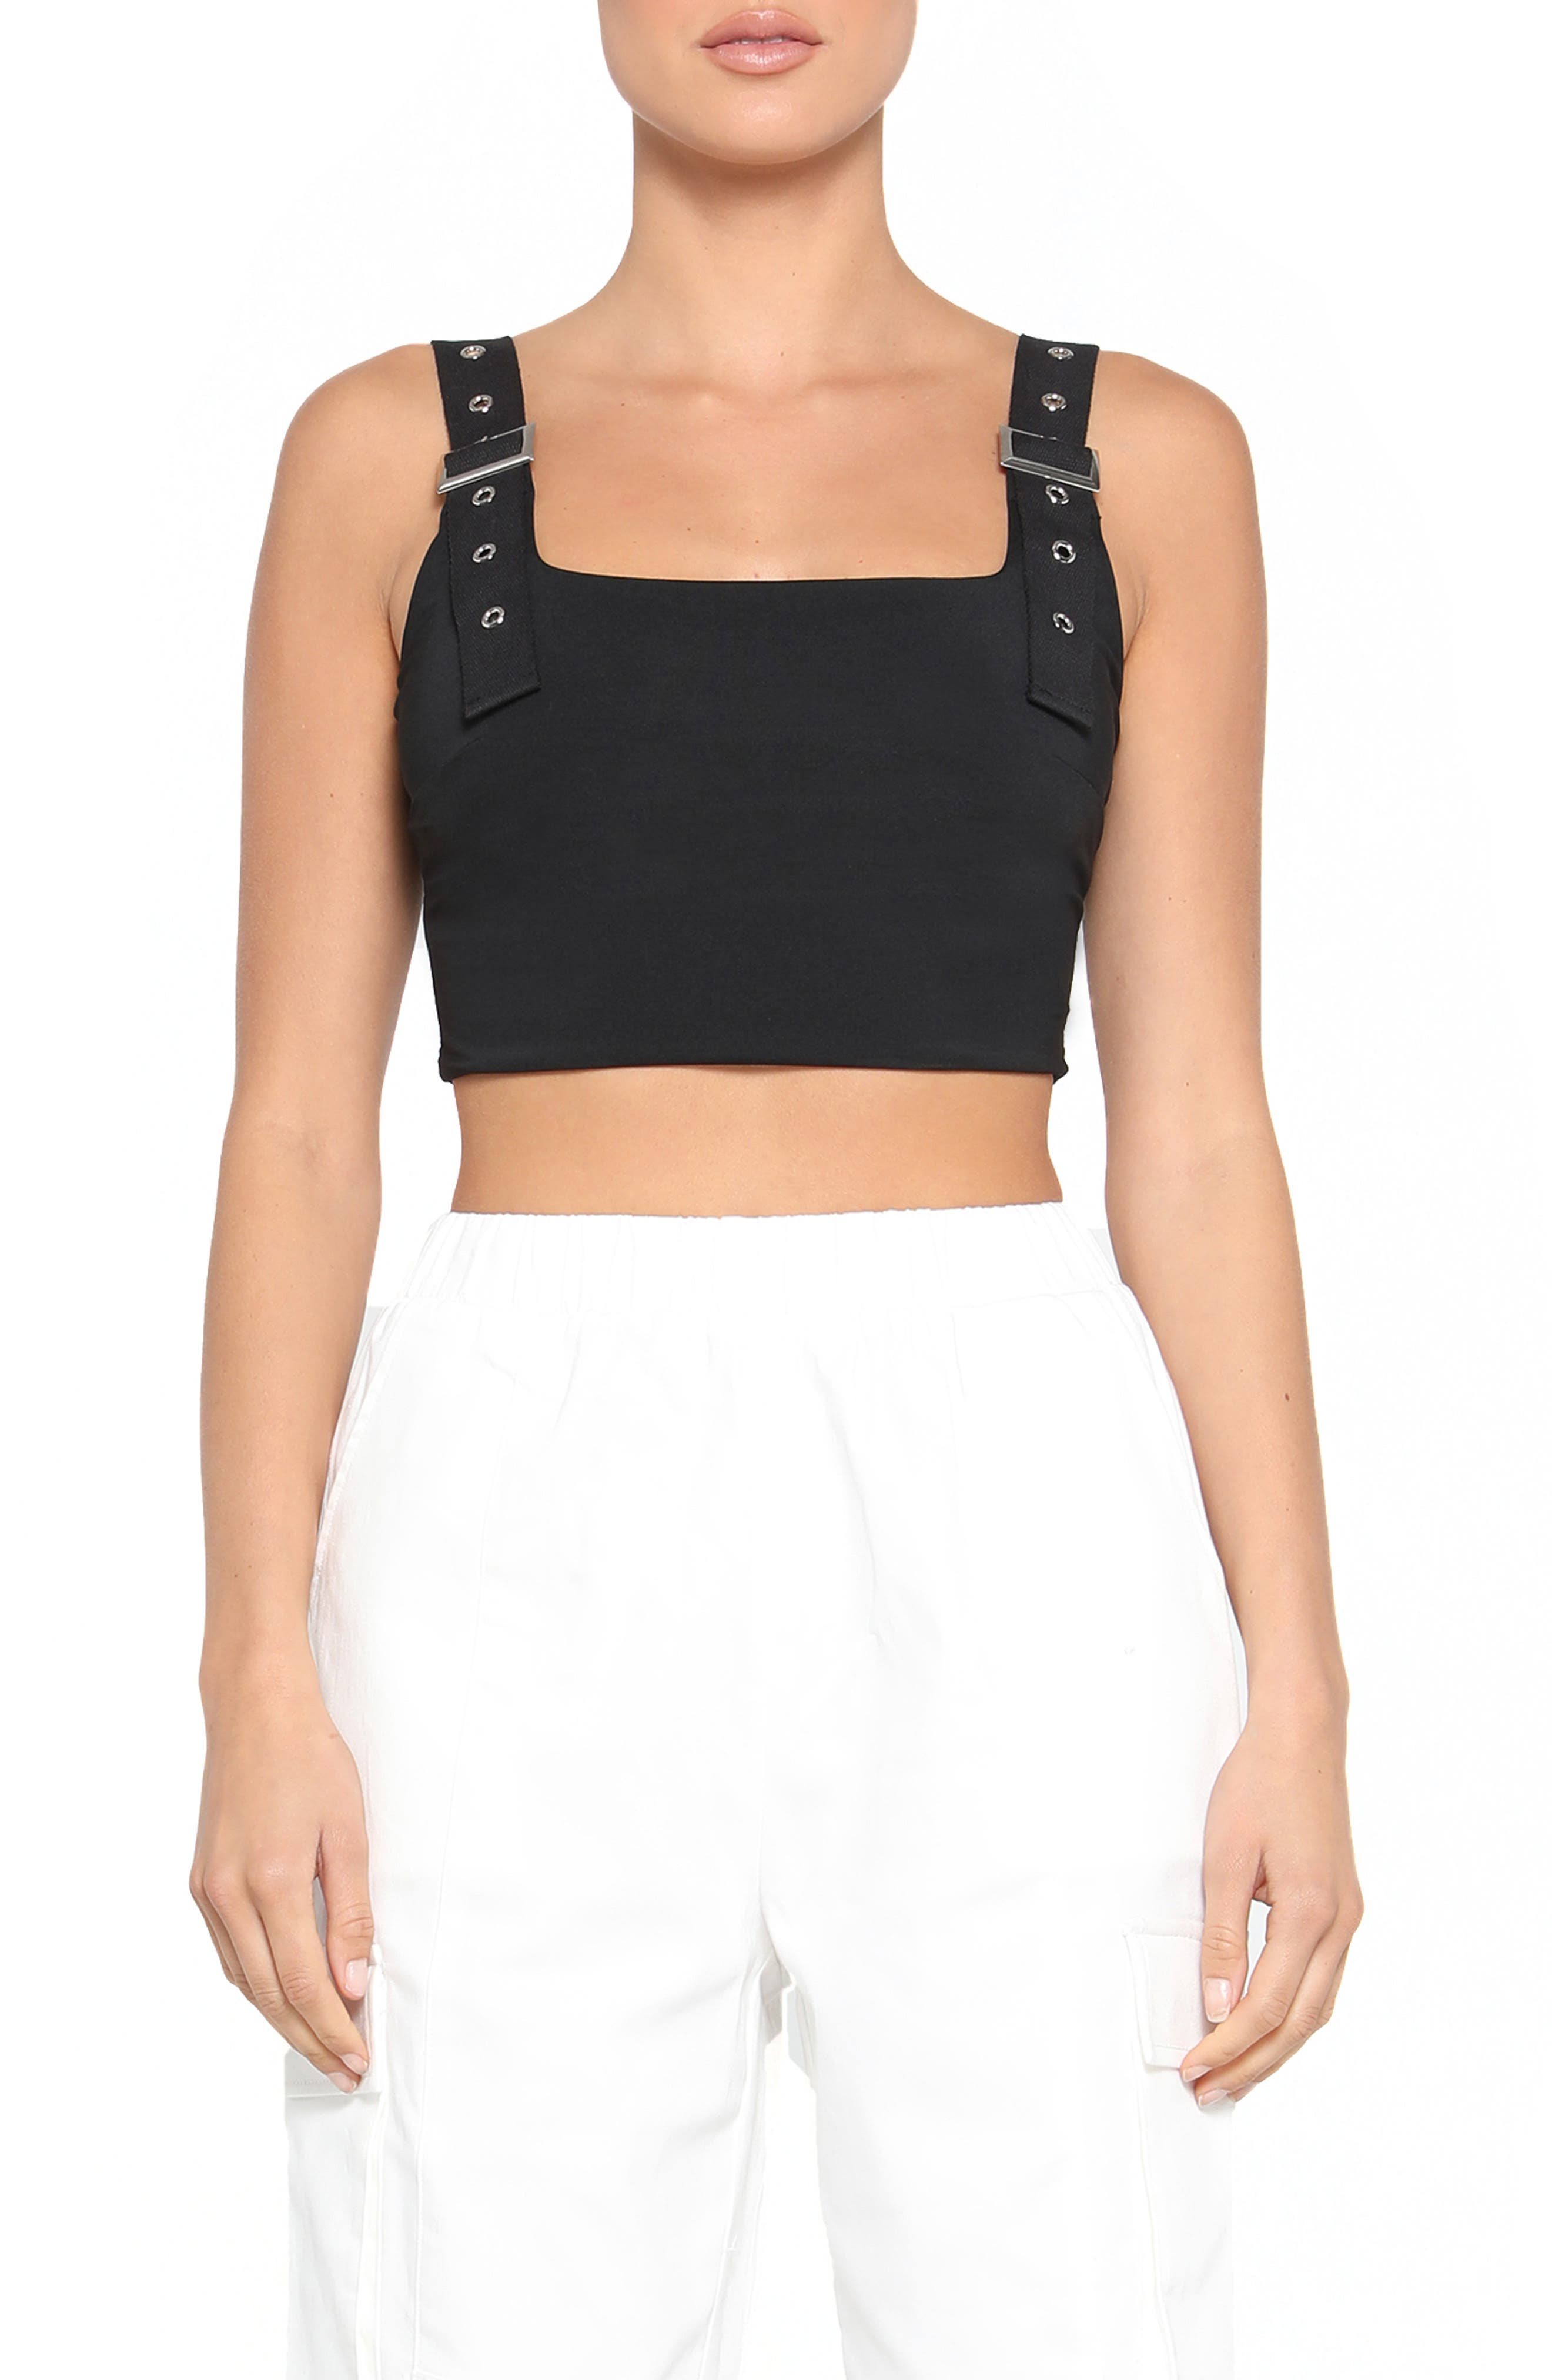 Image of Tiger Mist Kailey Utility Strap Crop Top